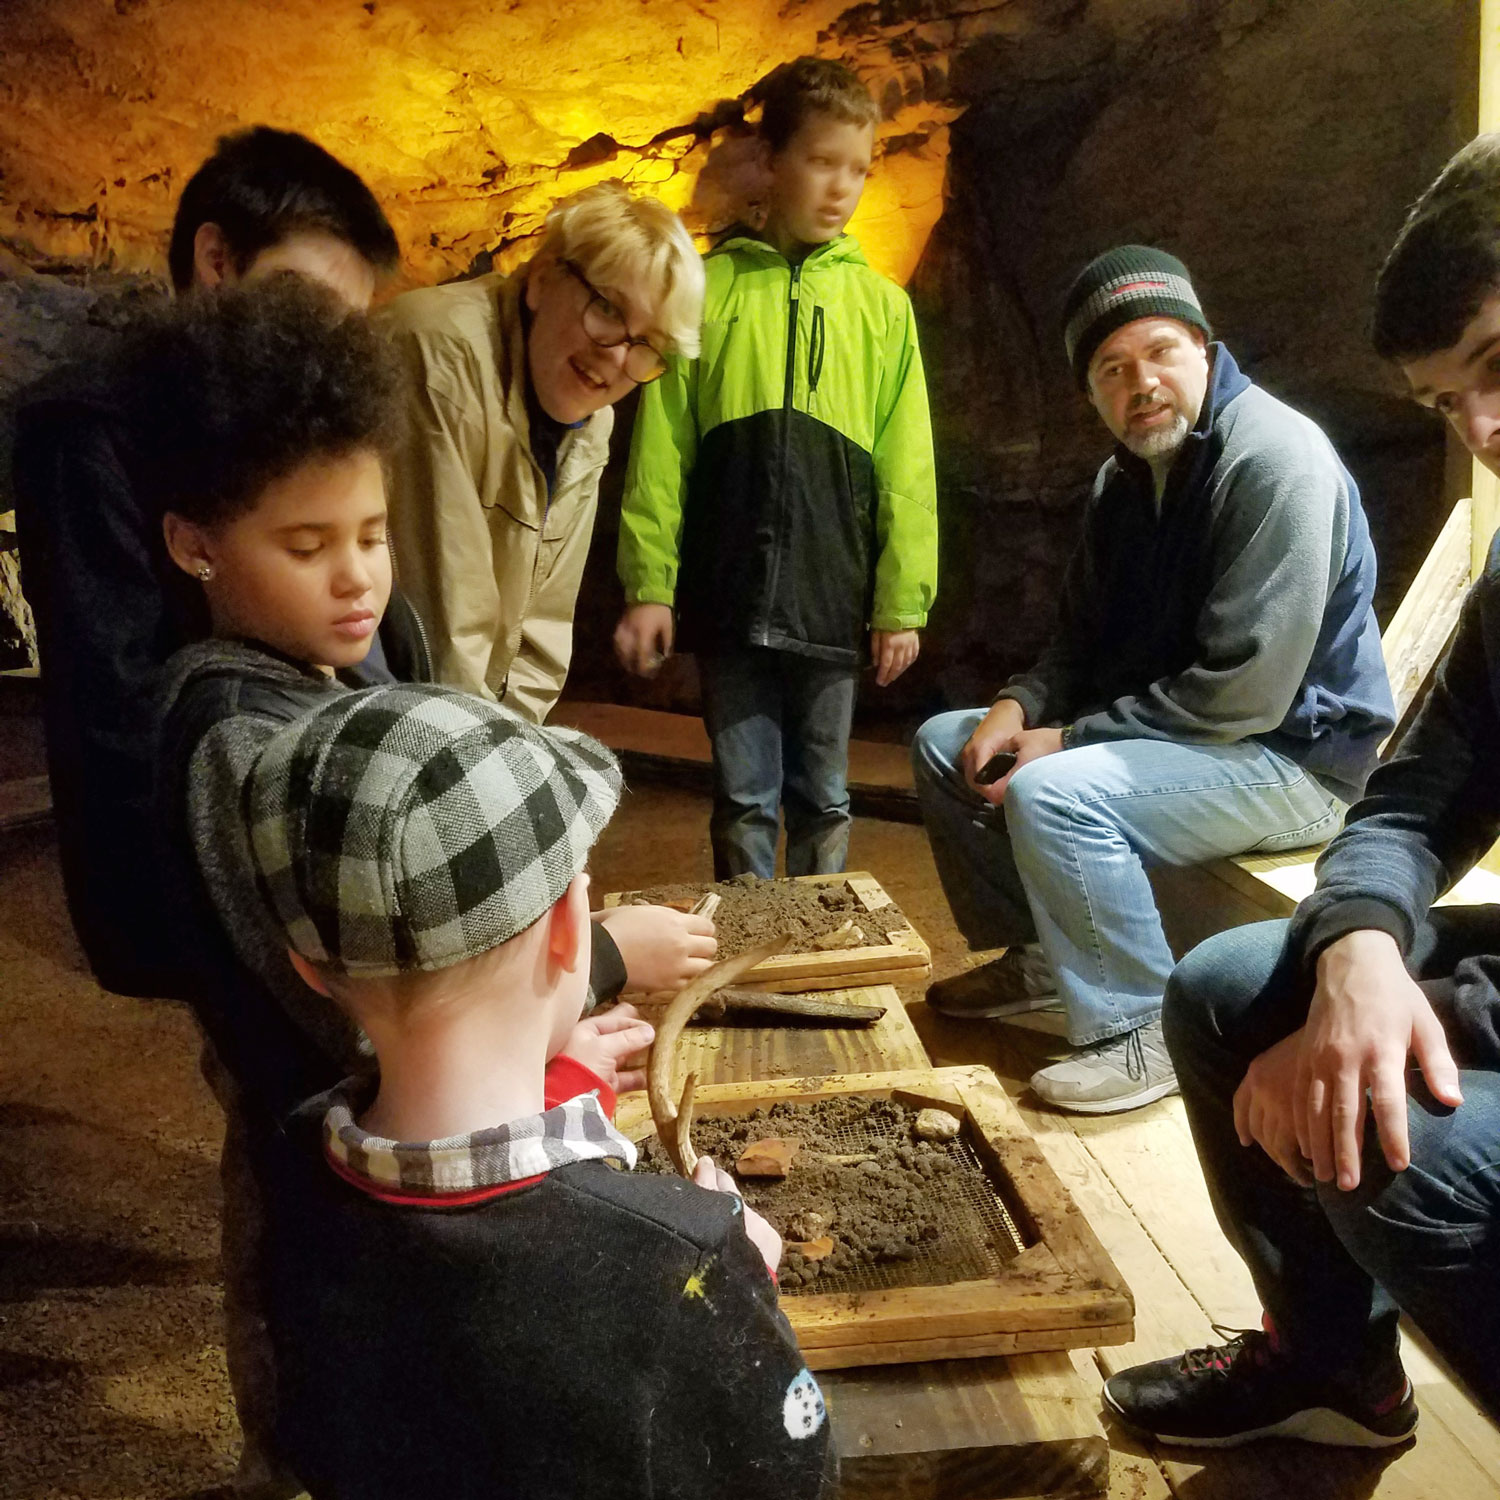 Fantastic Caverns Adventure Tour Fire Pit Excavation